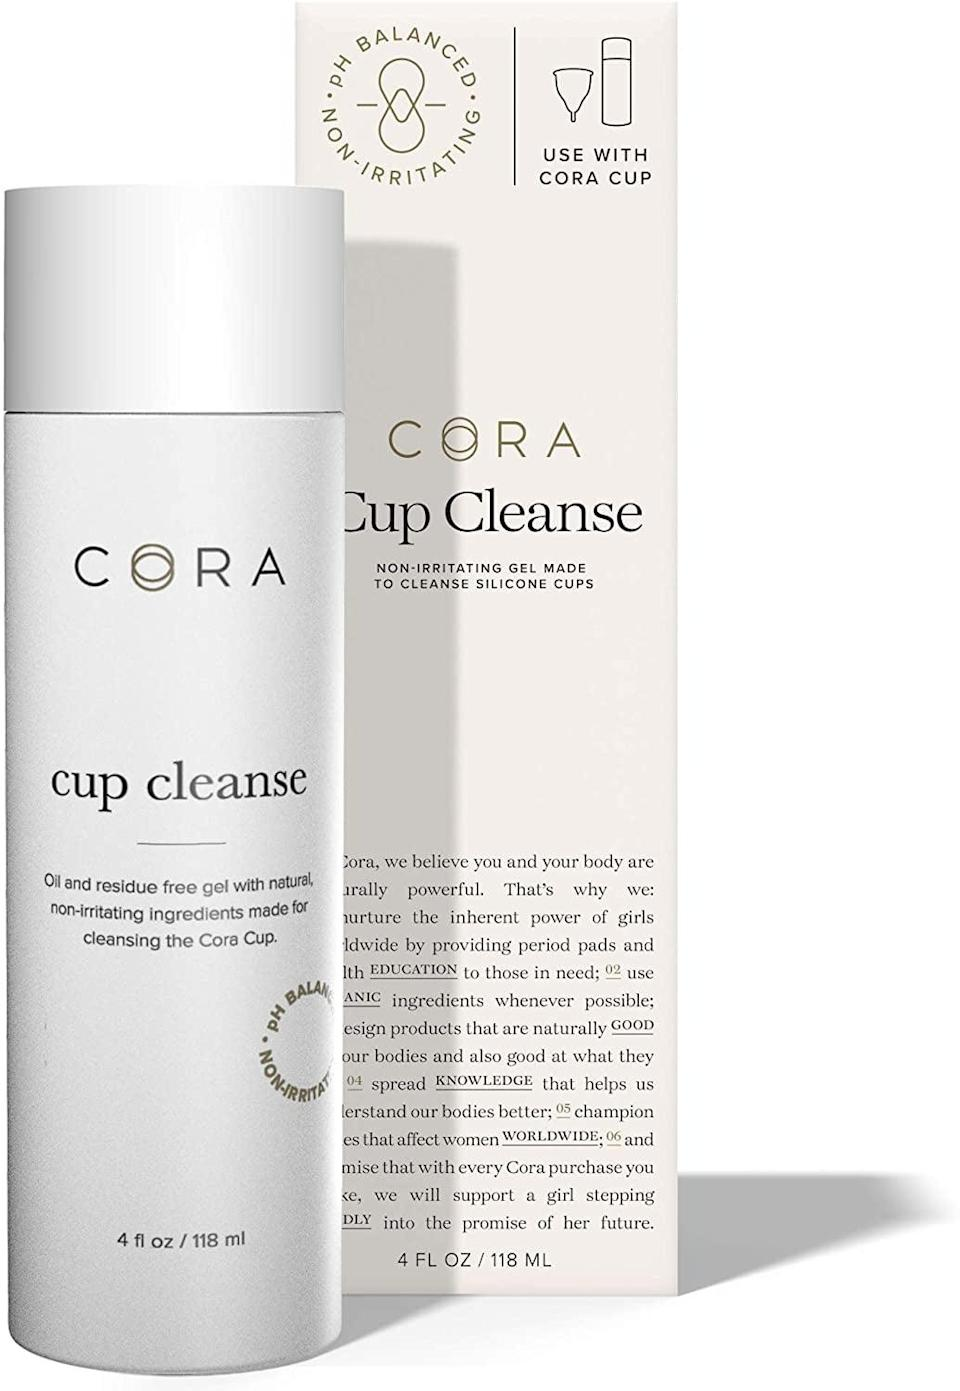 <p>The <span>Cora Menstrual Cup Cleanse</span> ($12) uses ingredients like cucumber extract and witch hazel to help cleanse the cup, as well as lemon extract to prevent staining. The formula is also free of fragrance and oil.</p>